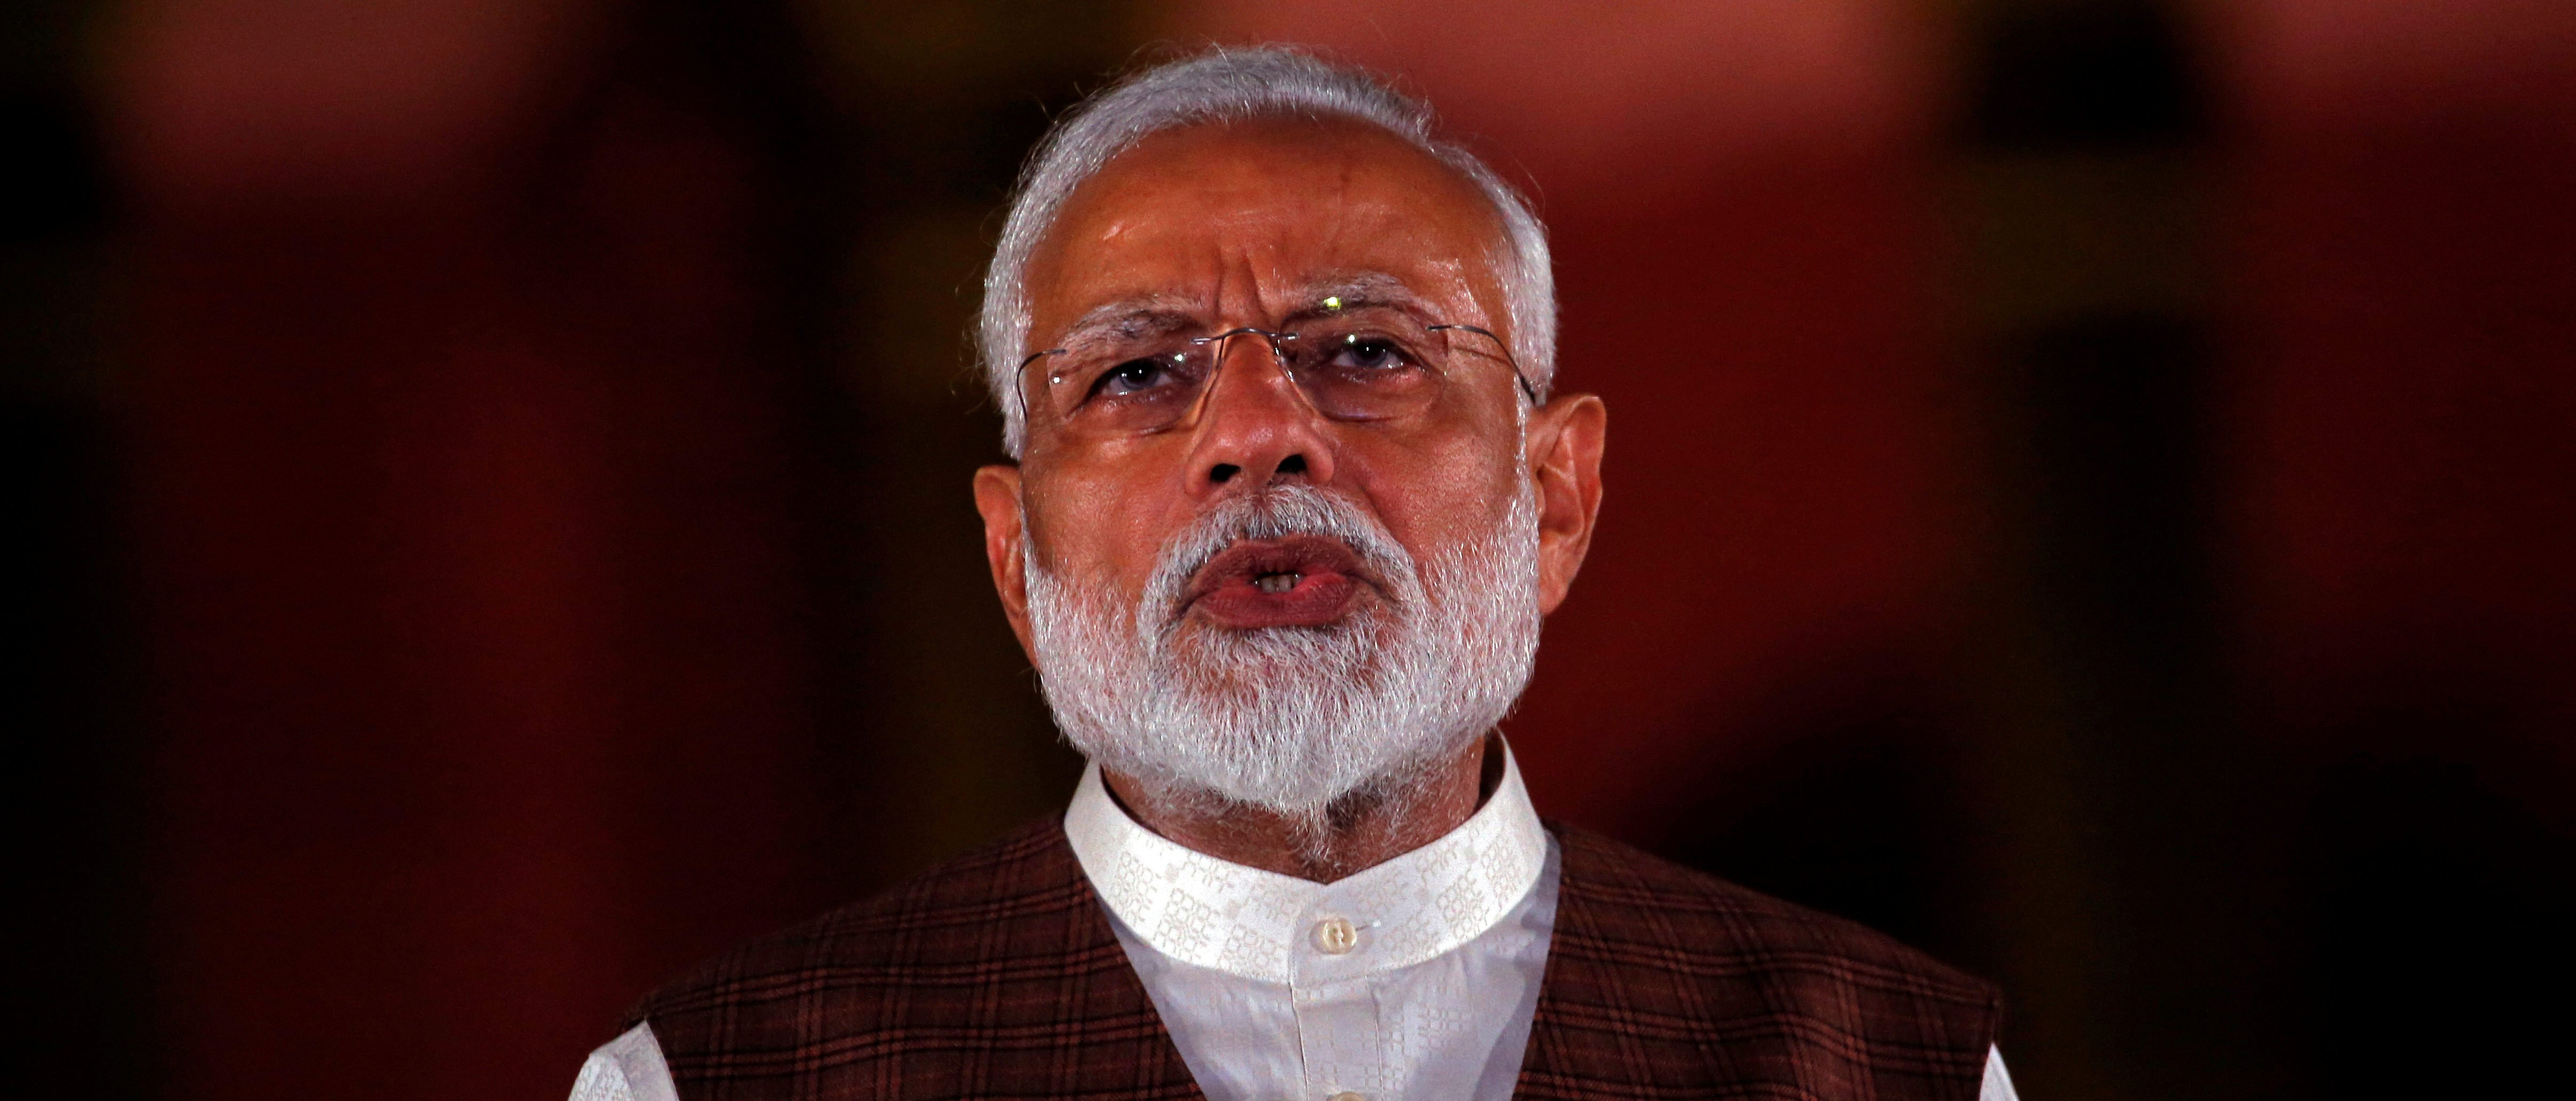 India's Prime Minister Narendra Modi speaks to the media after his meeting with President Ram Nath Kovind, to stake claim to form the new government at the Presidential Palace in New Delhi